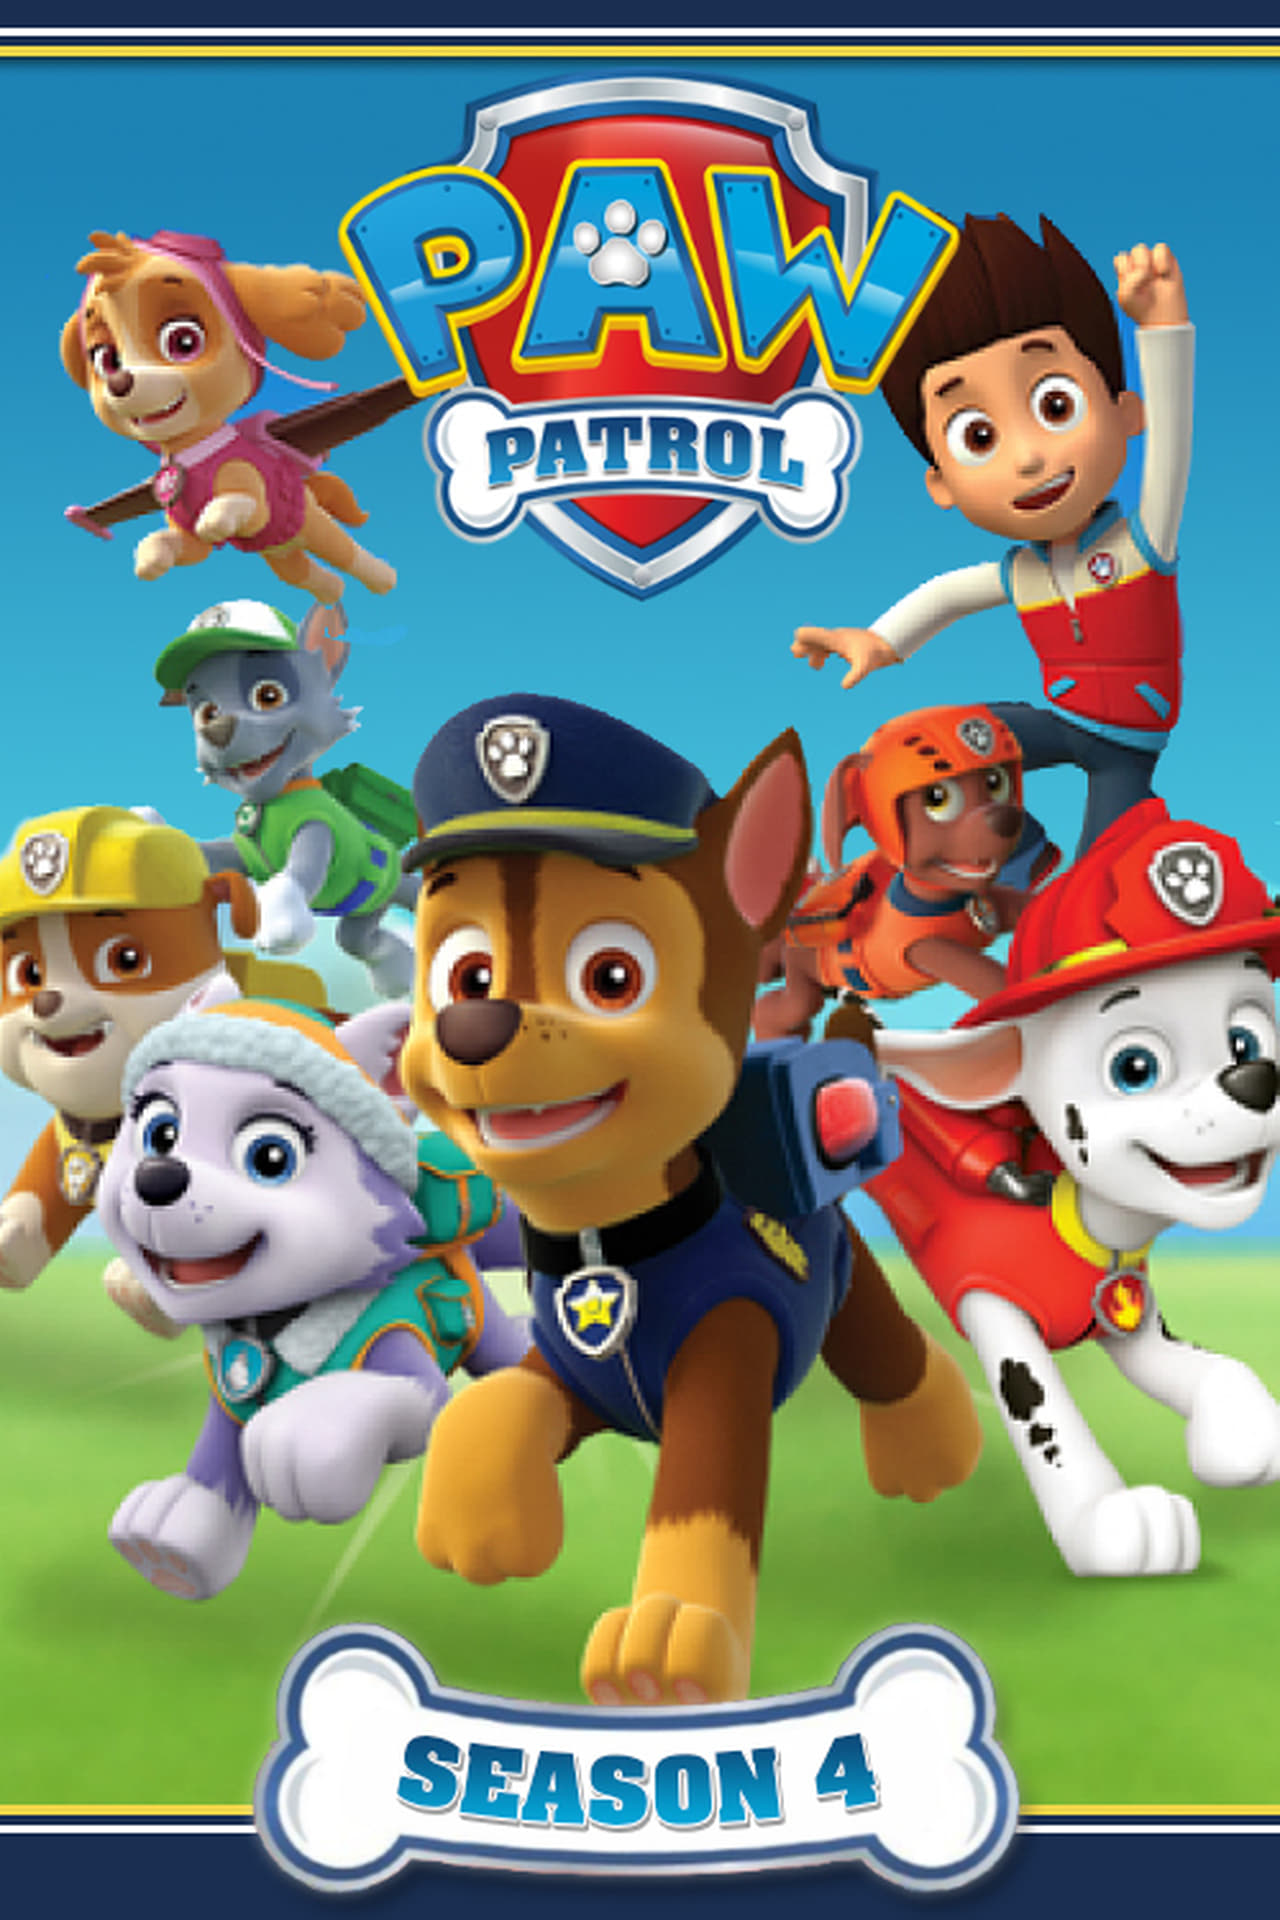 Paw Patrol Season 4 (2017) putlockers cafe